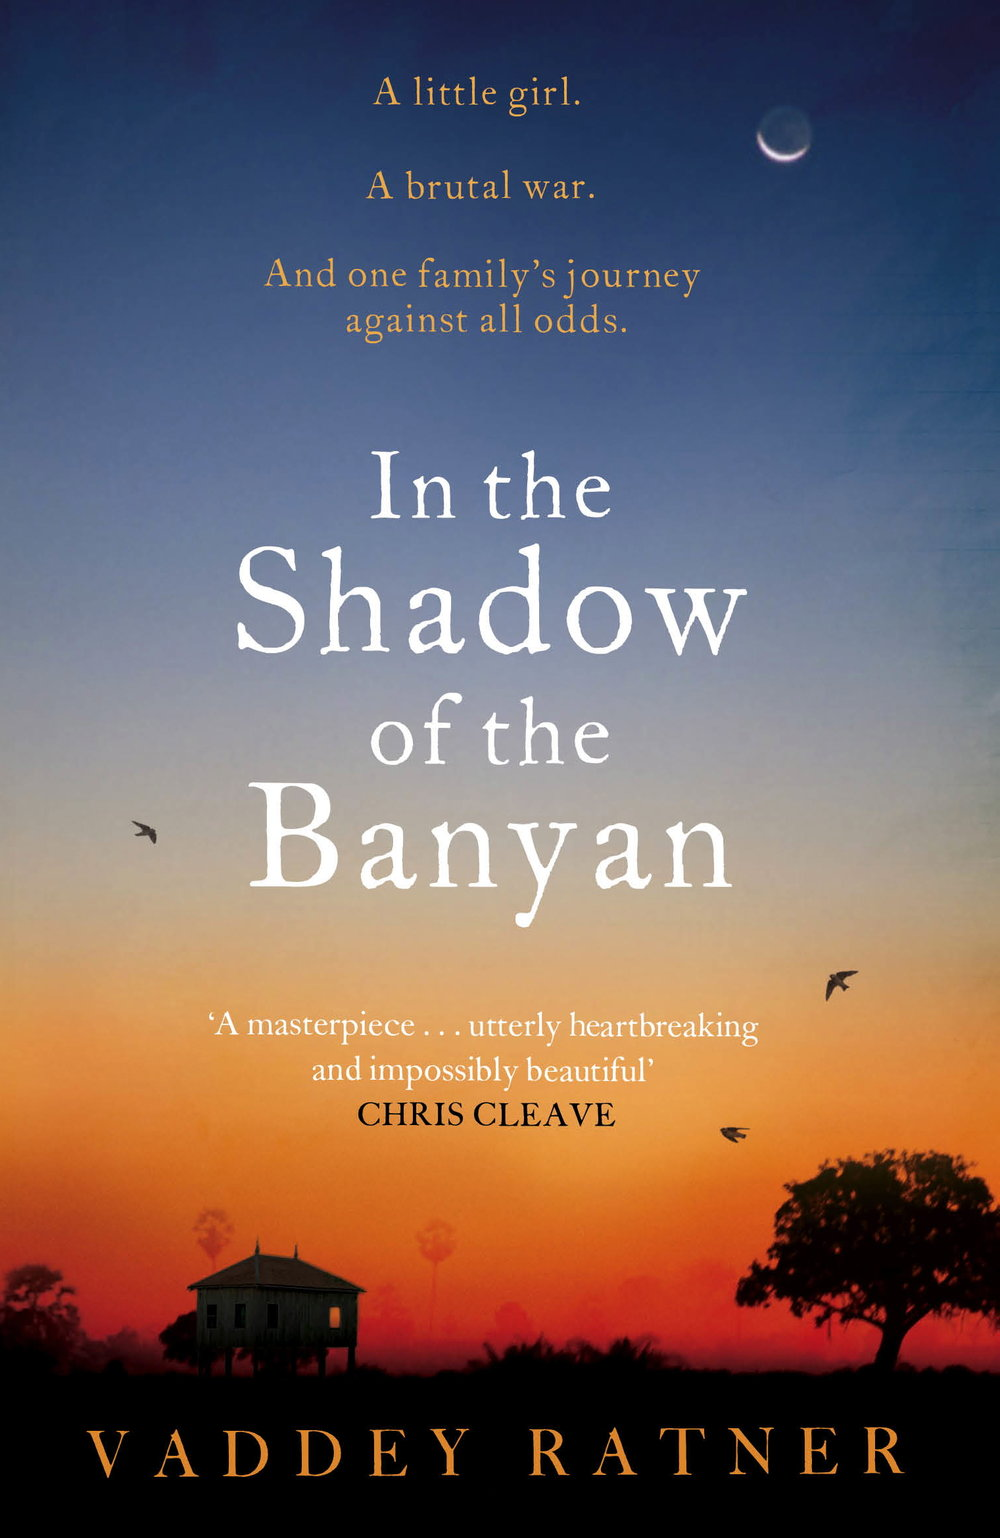 in-the-shadow-of-the-banyan.jpg